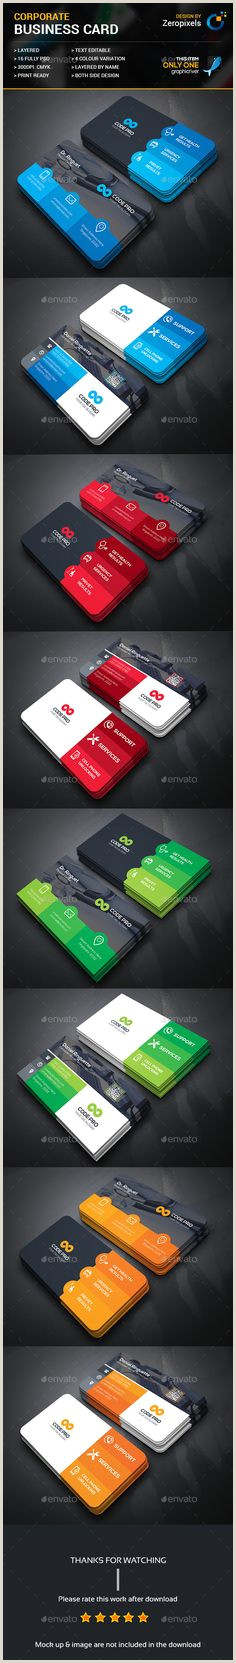 Industrial Business Cards 20 Best Business Cards Images